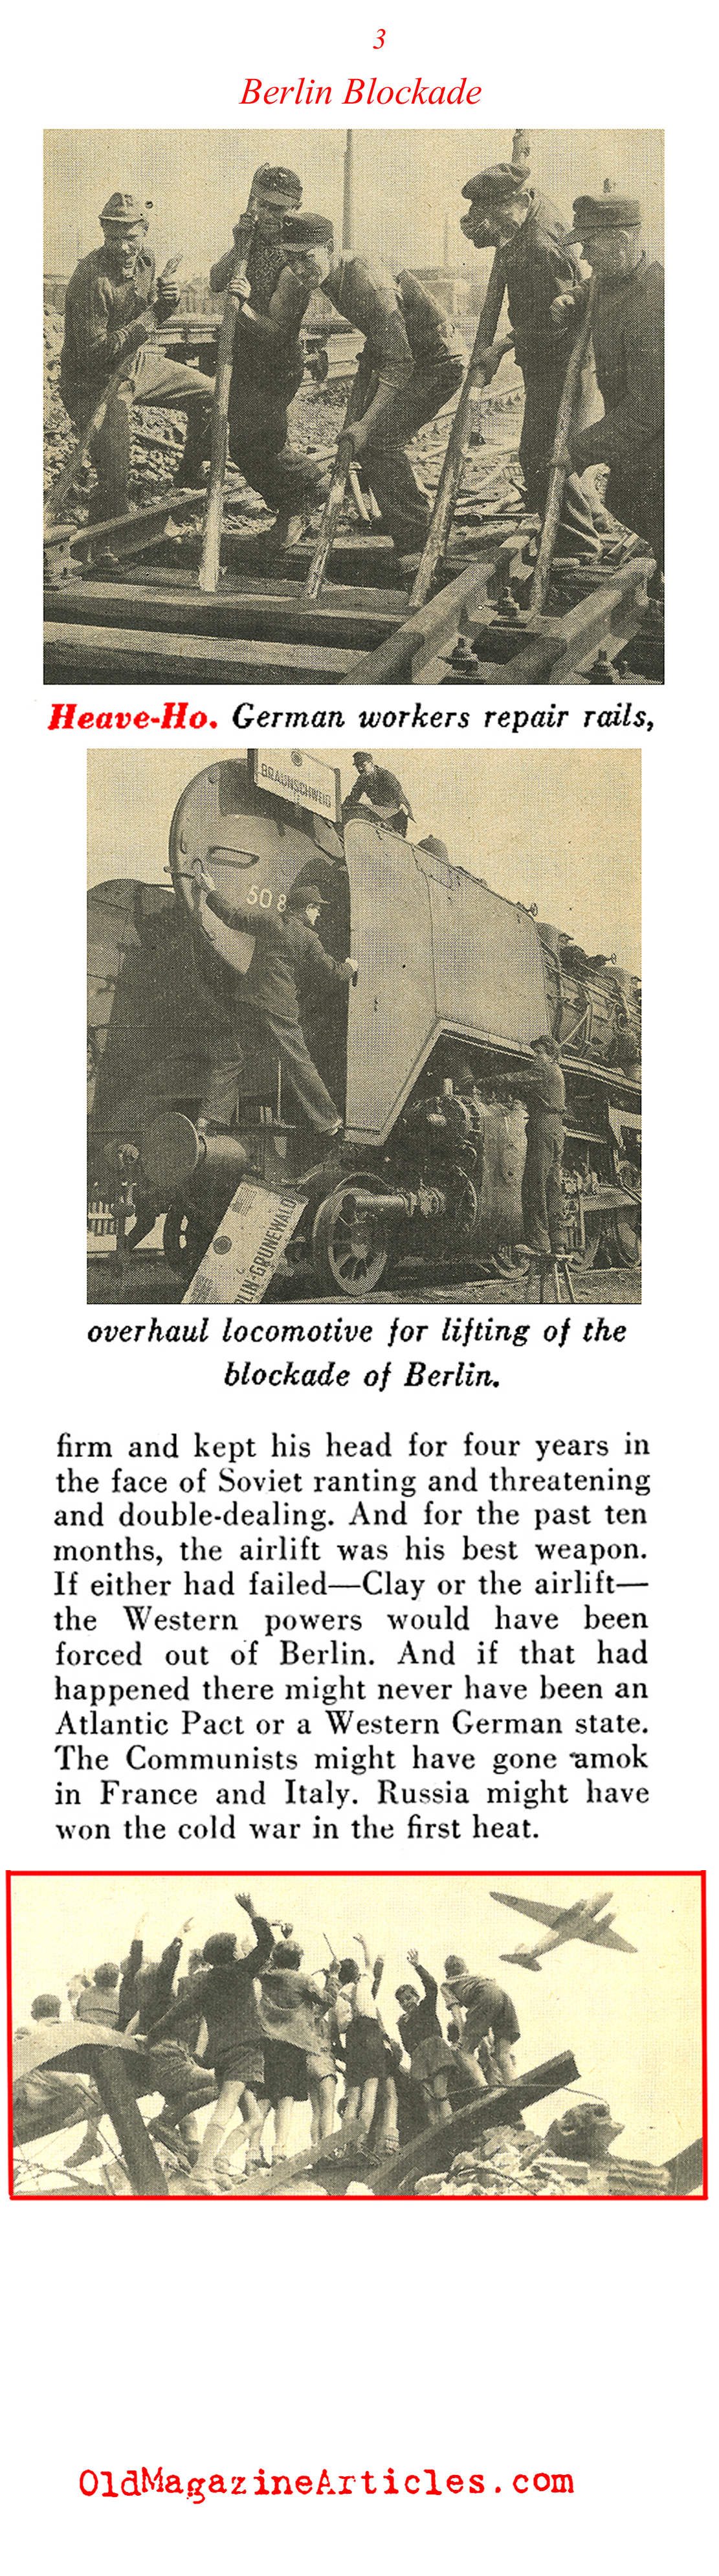 A Look Back at the Berlin Air-Lift (Pathfinder Magazine, 1949)